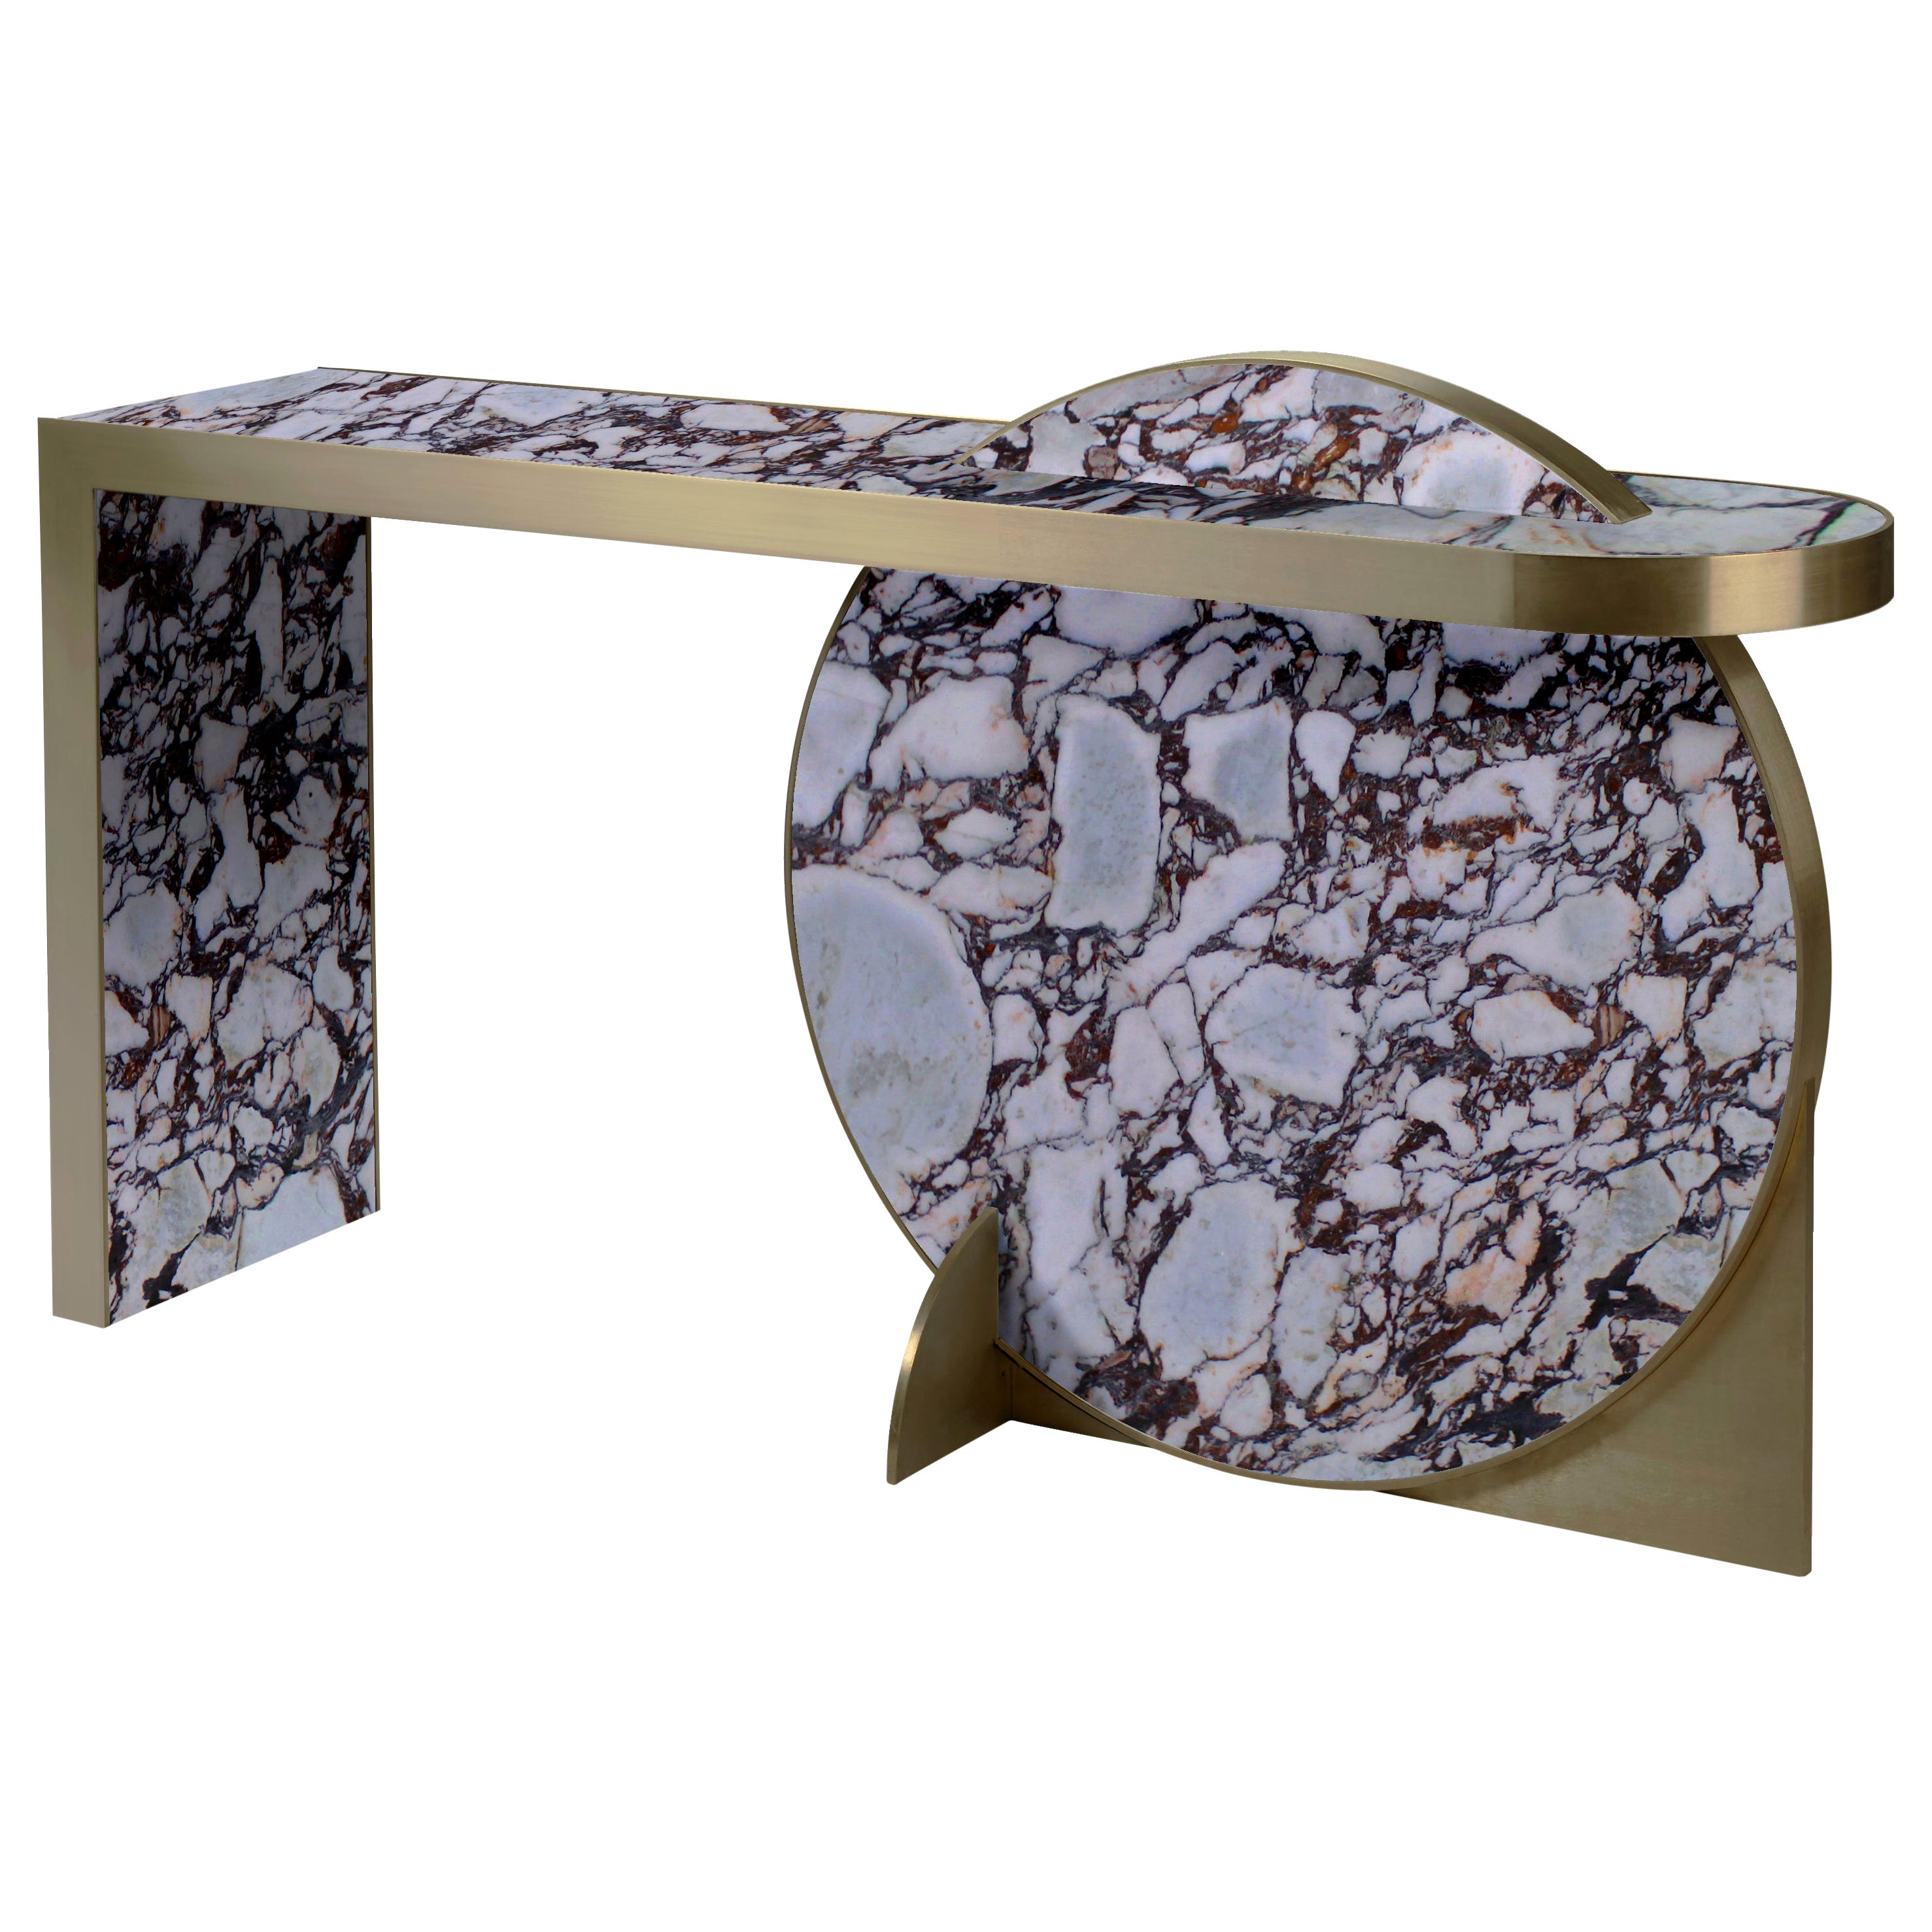 The Collision Console Carrara Marble and Brushed Brass, Viola, by Lara Bohinc